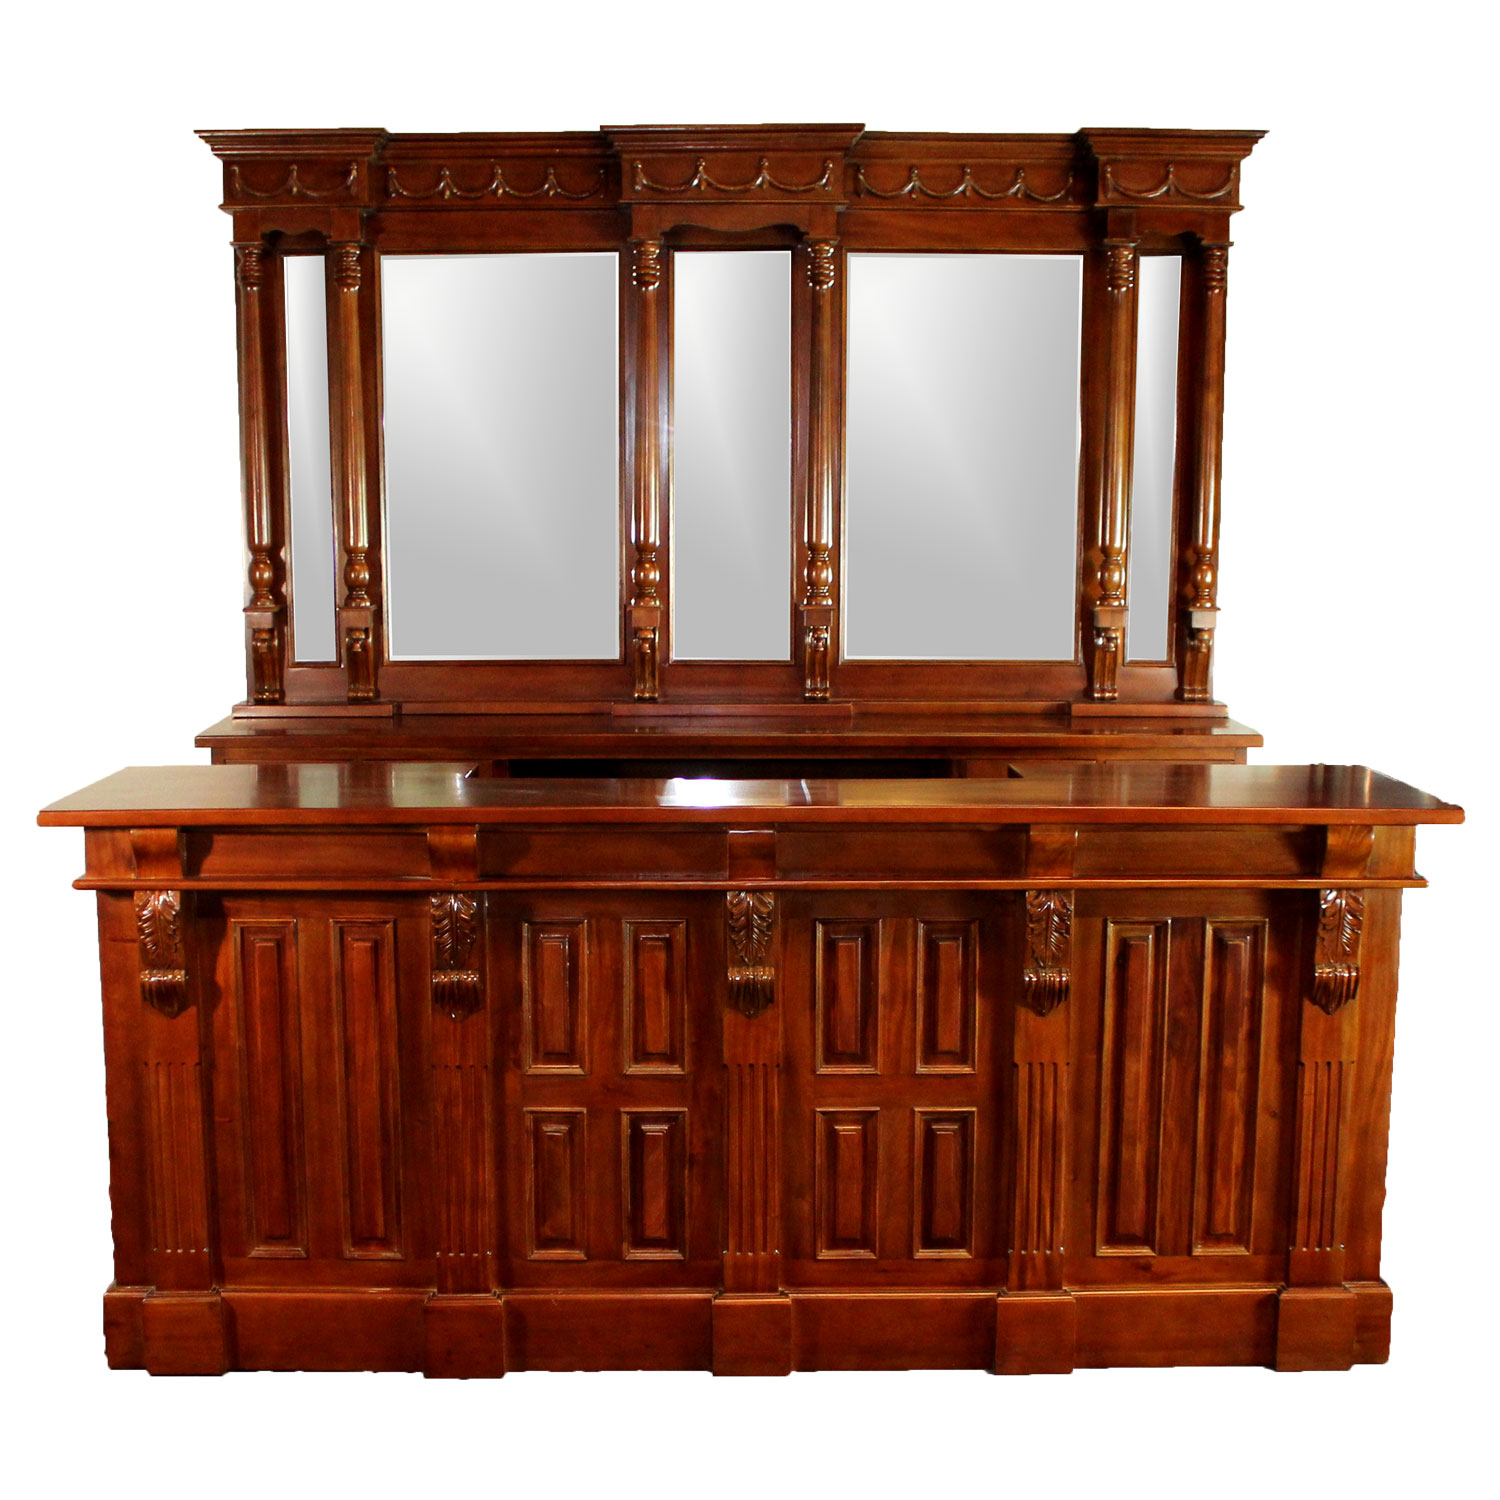 Home Bar Furniture 8 Ft Front Back Home Bar Antique Replica Mahogany Wine Shop Counter Victorian